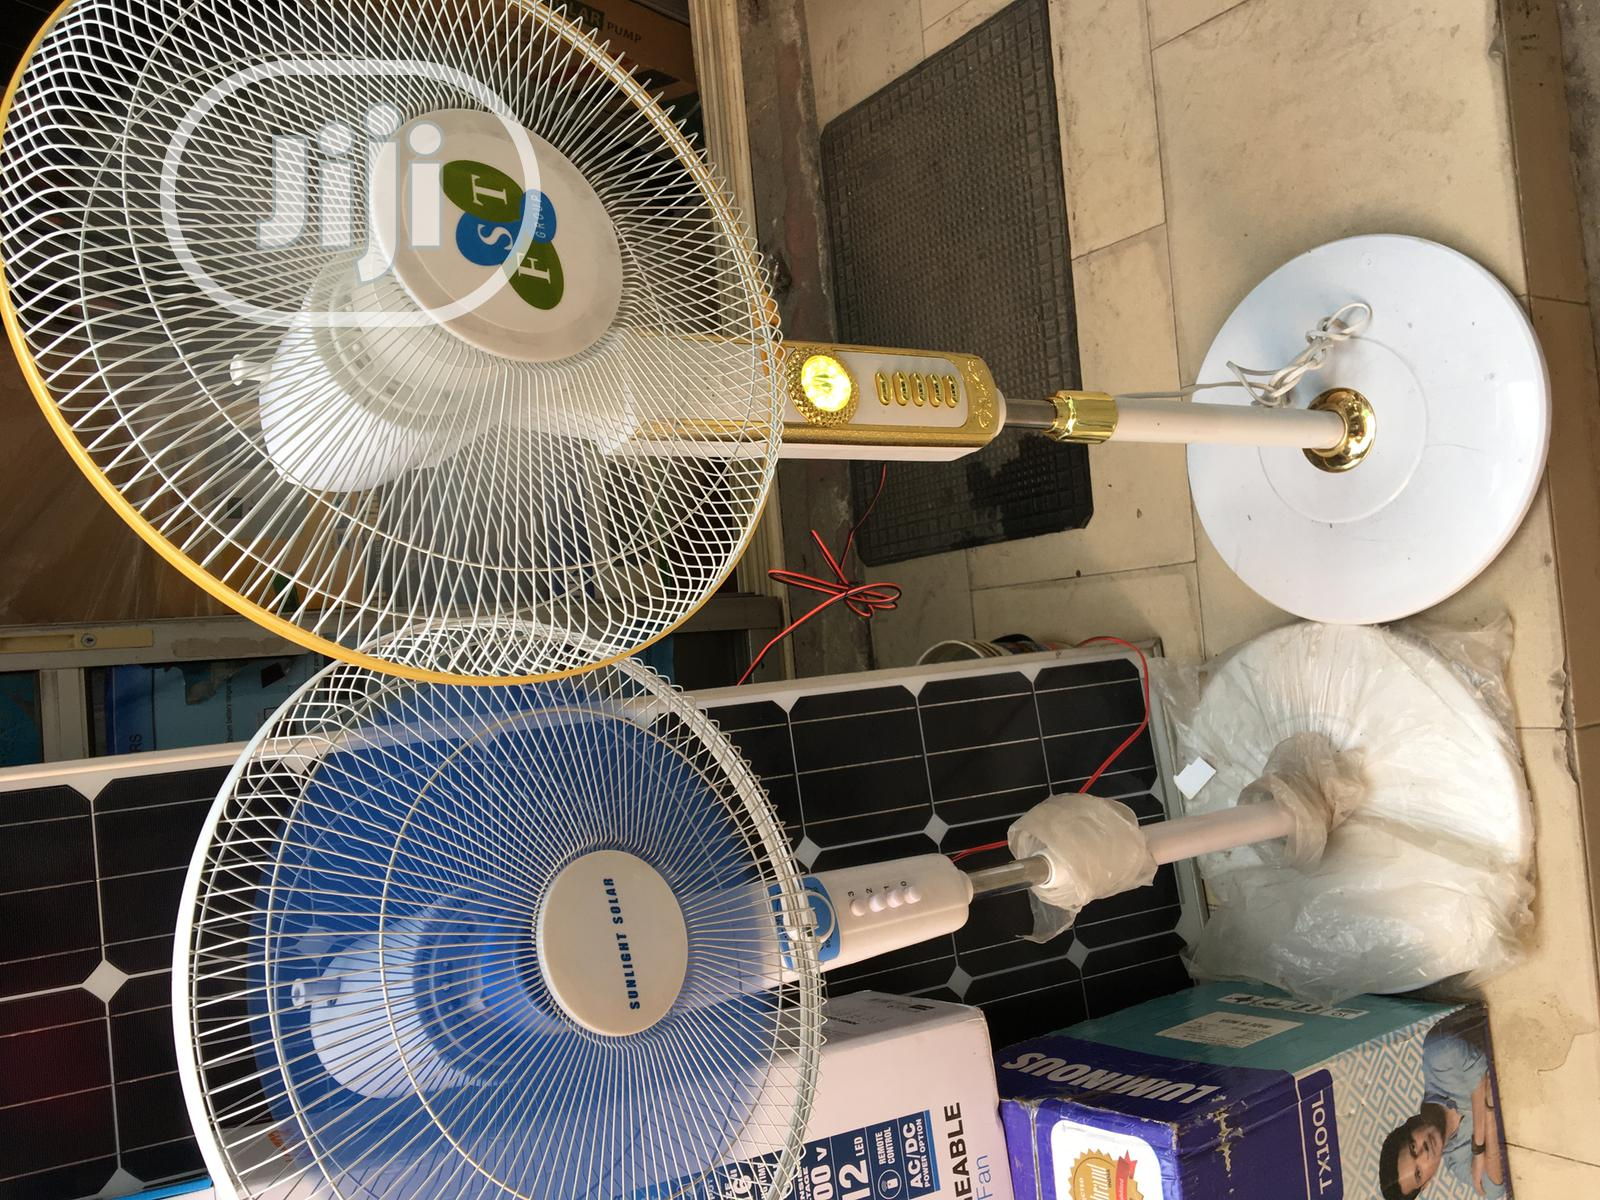 16inches DC Solar Standing Fan Available With 1yr Warranty